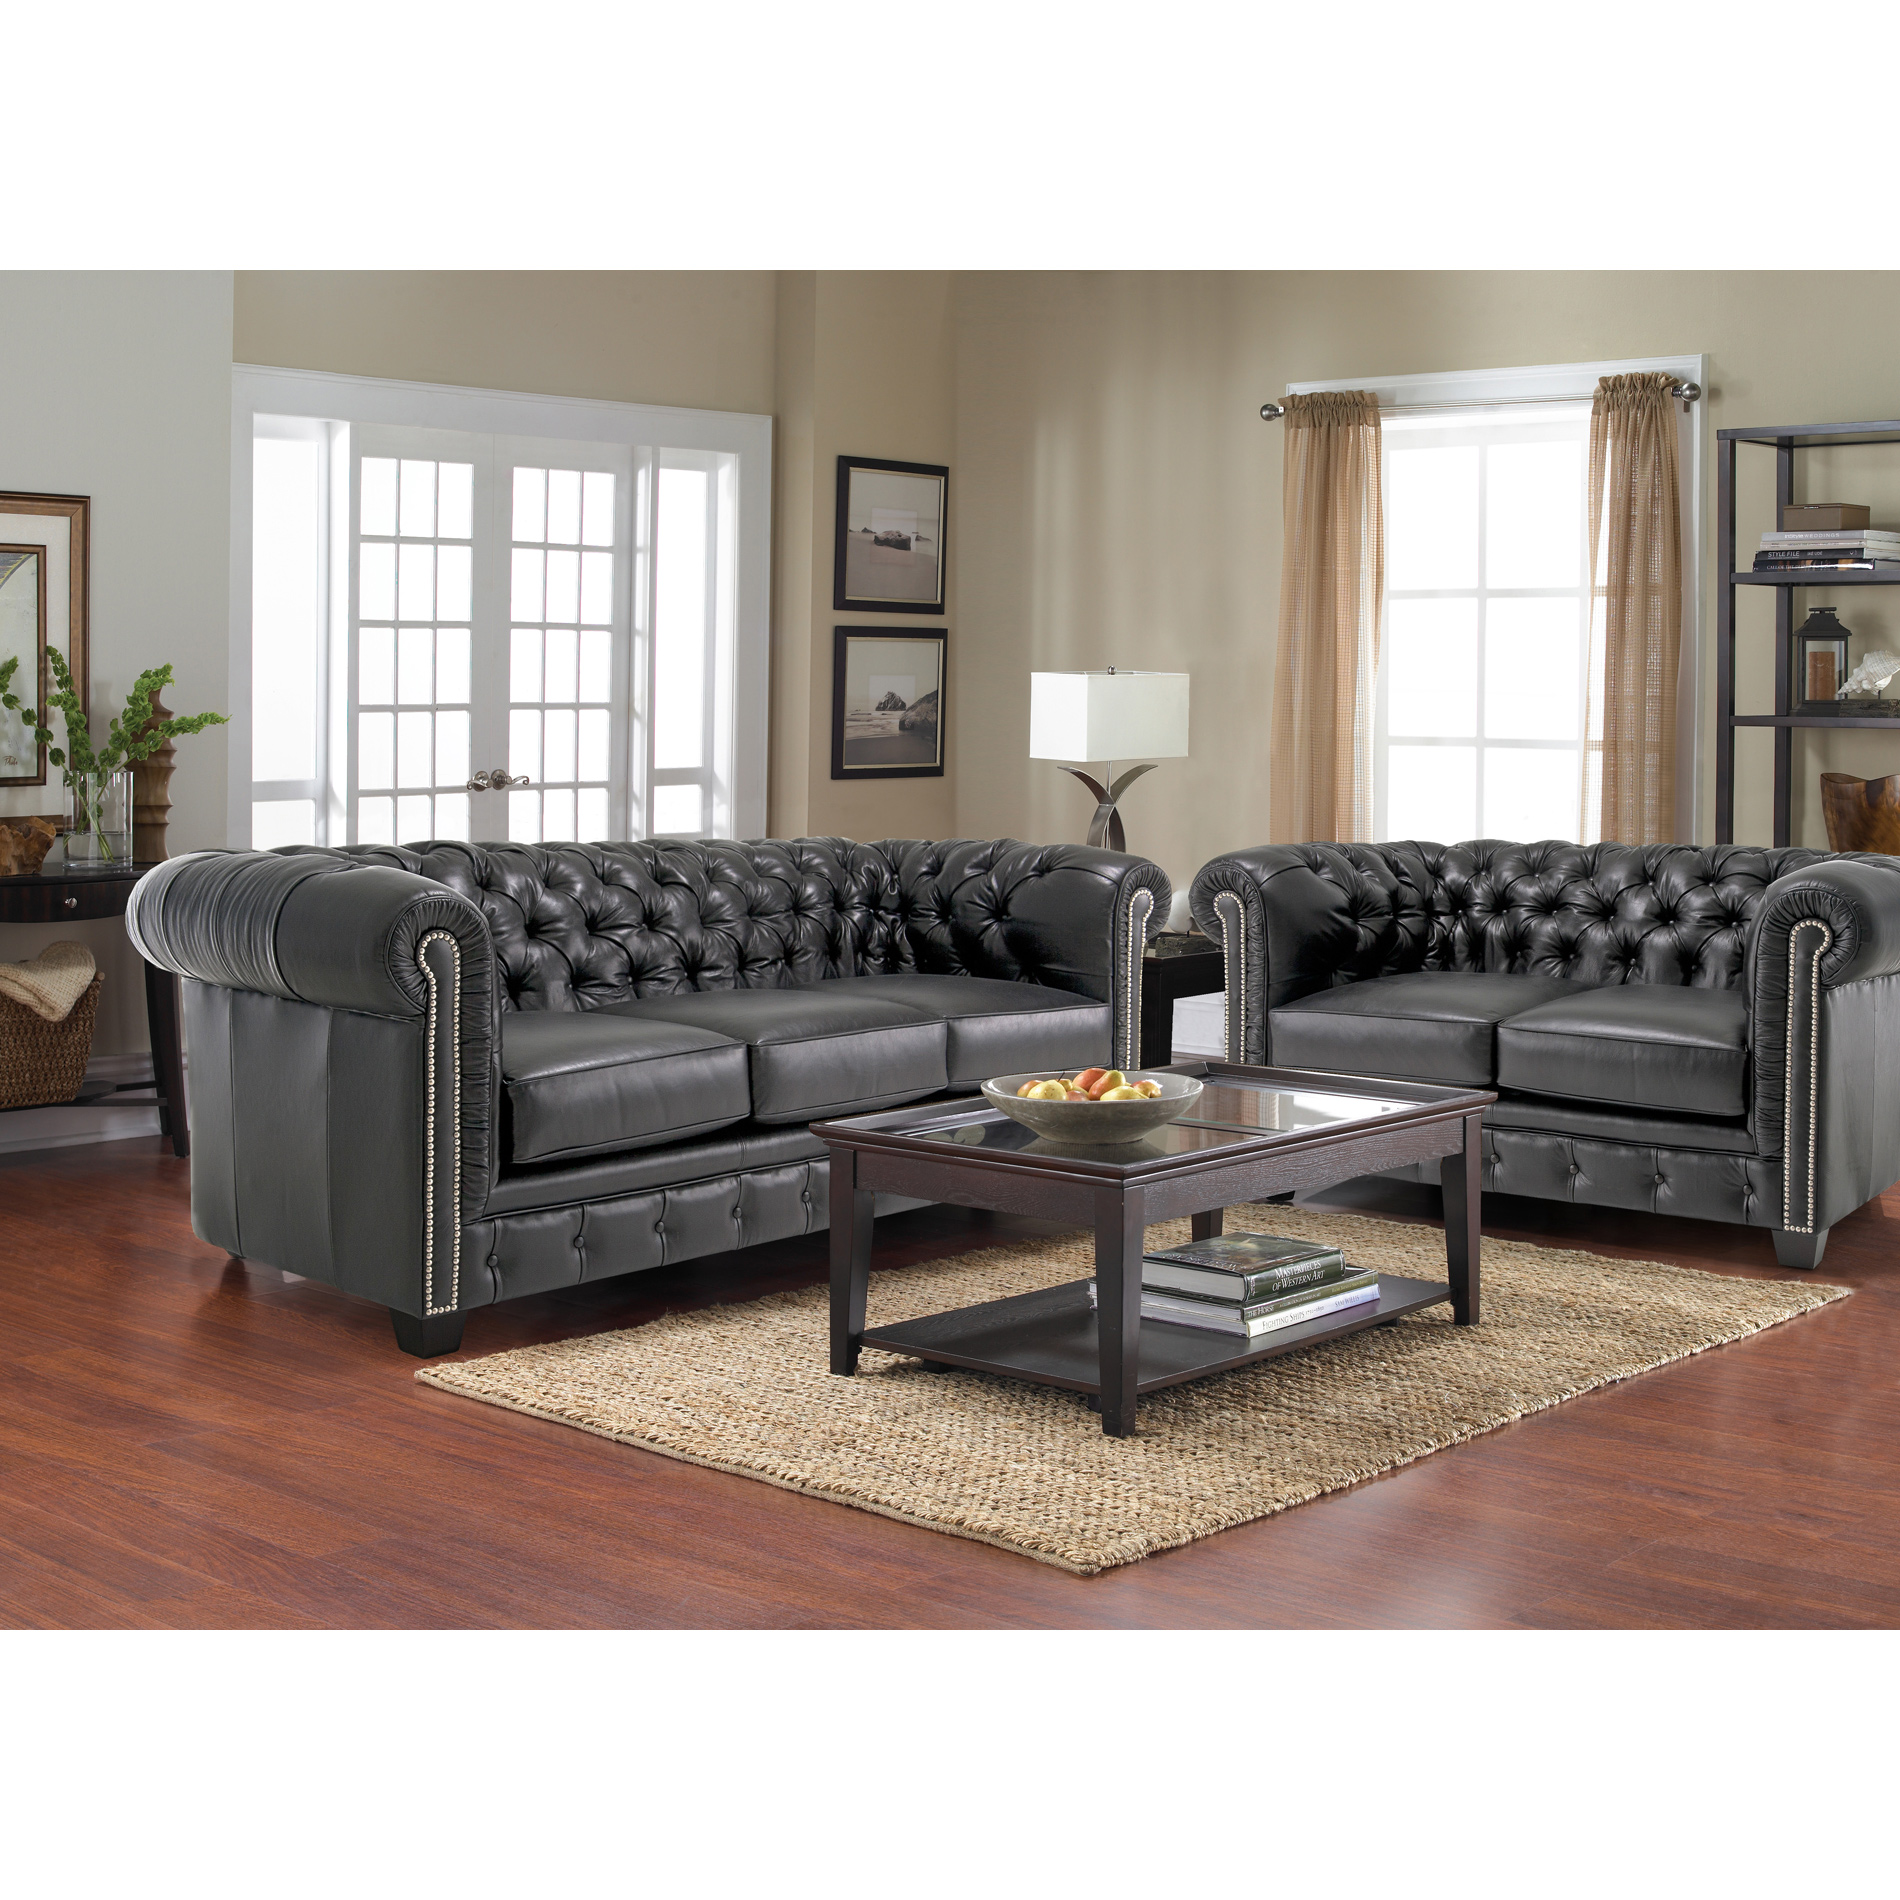 Sofawebcom Hancock Tufted Black Italian Chesterfield Leather Sofa